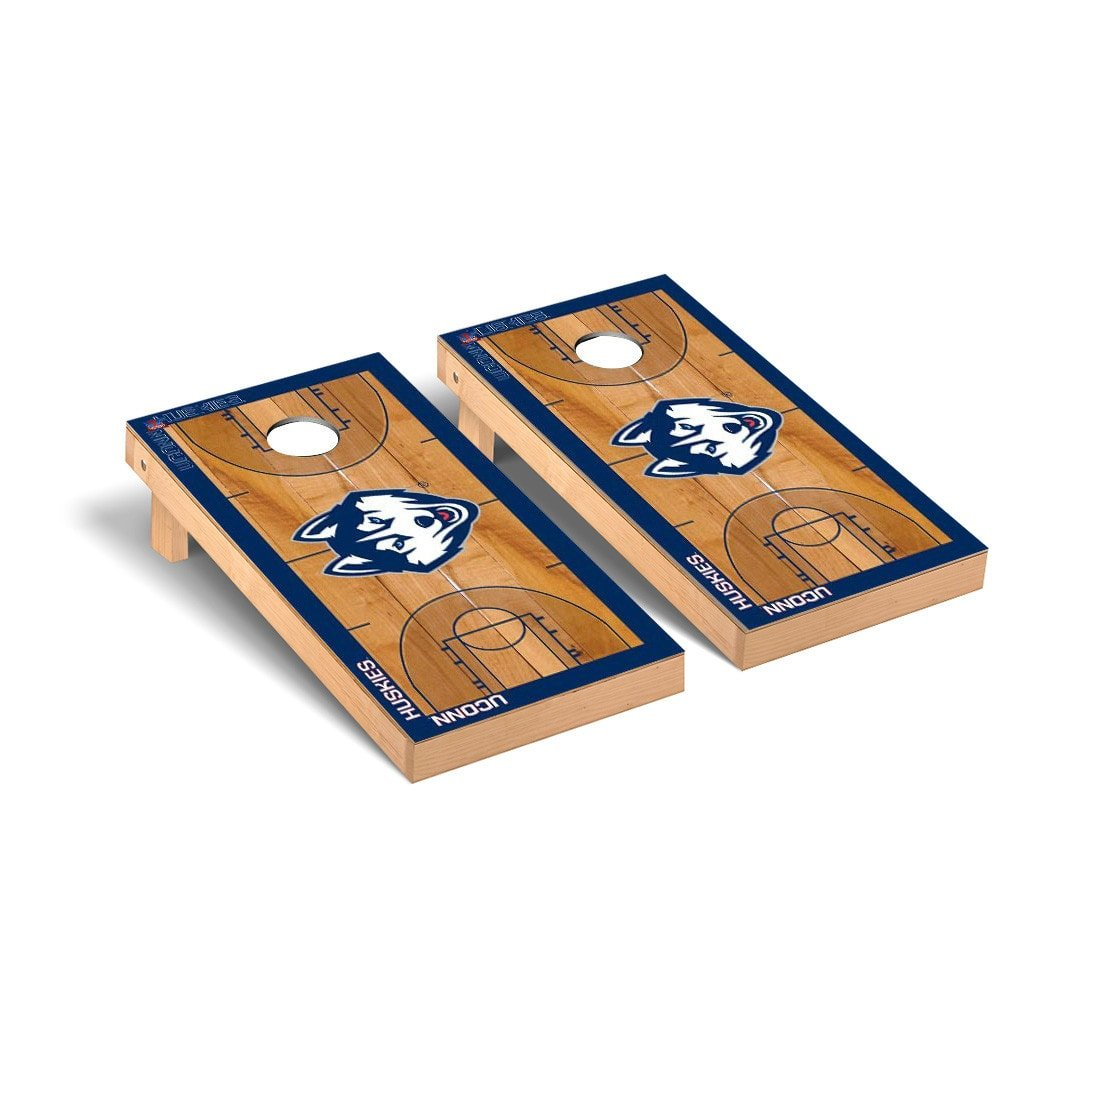 Connecticut UCONN Huskies Regulation Cornhole Game Set Basketball Court Version by Victory Tailgate